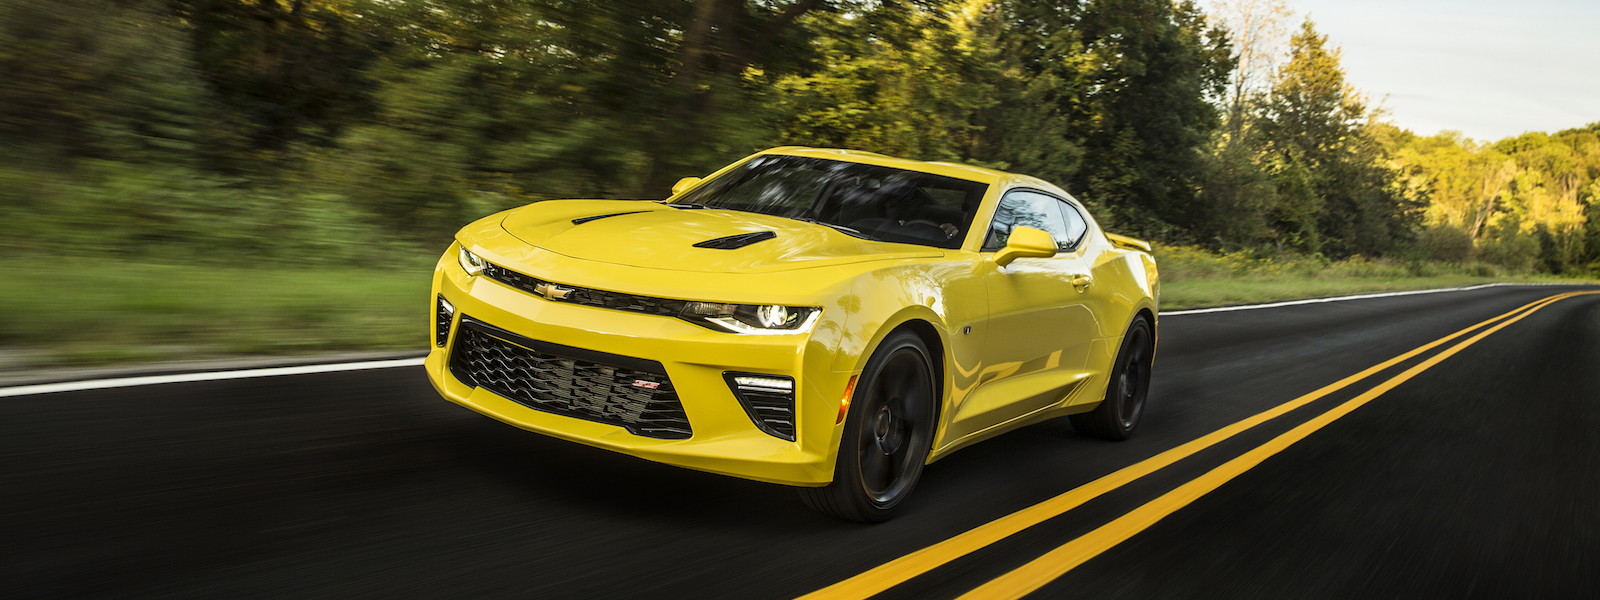 A yellow 2016 Chevy Camaro driving down a scenic road with trees in the background.